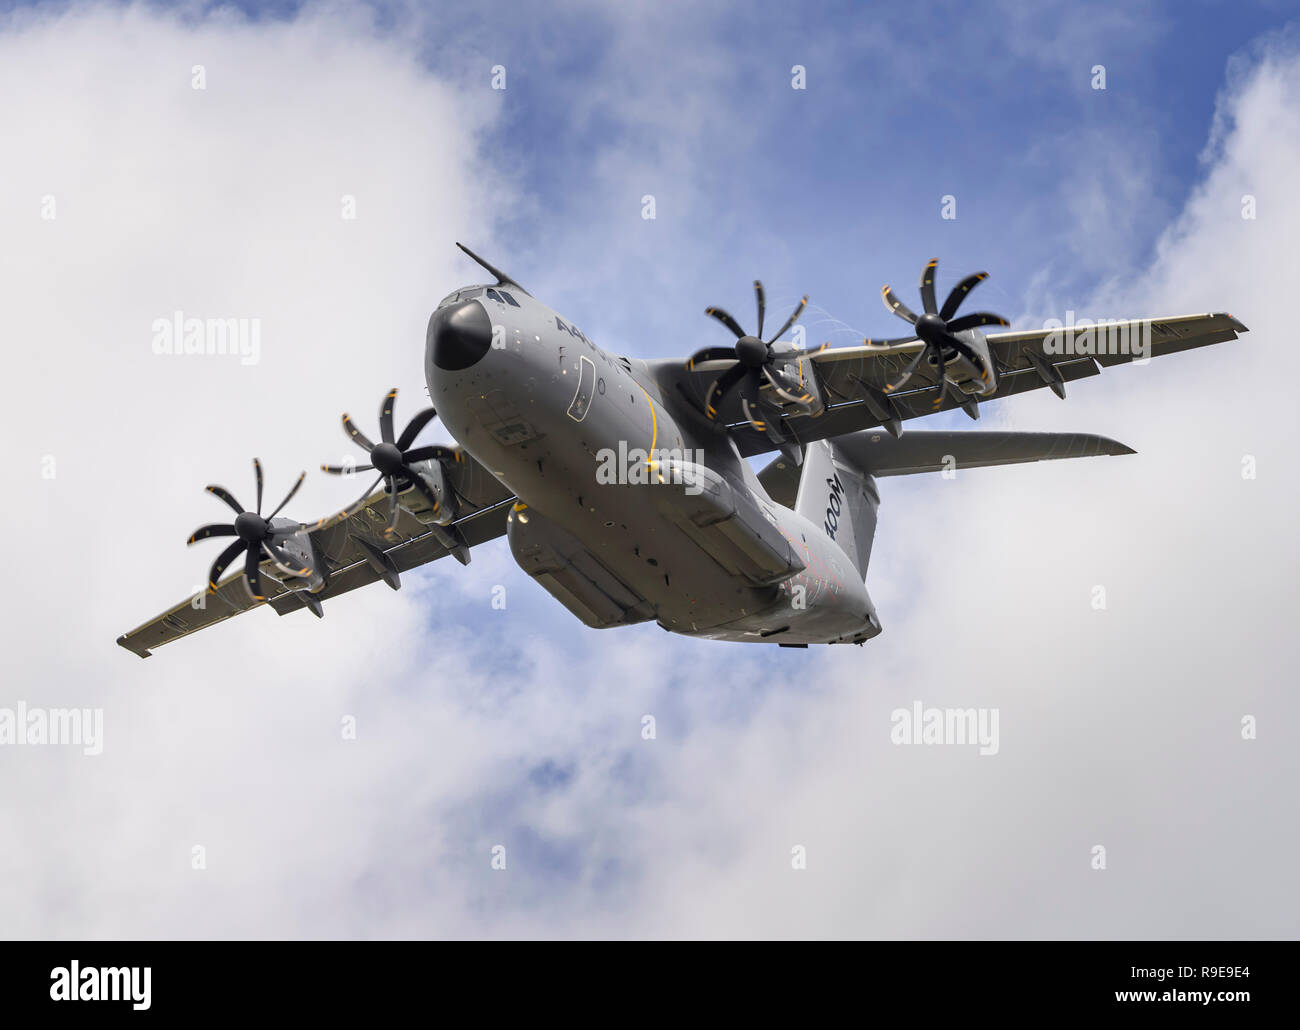 Airbus A400M Atlas military transport aircraft performs a clean pass (wheels up), flying overhead from right to left. - Stock Image